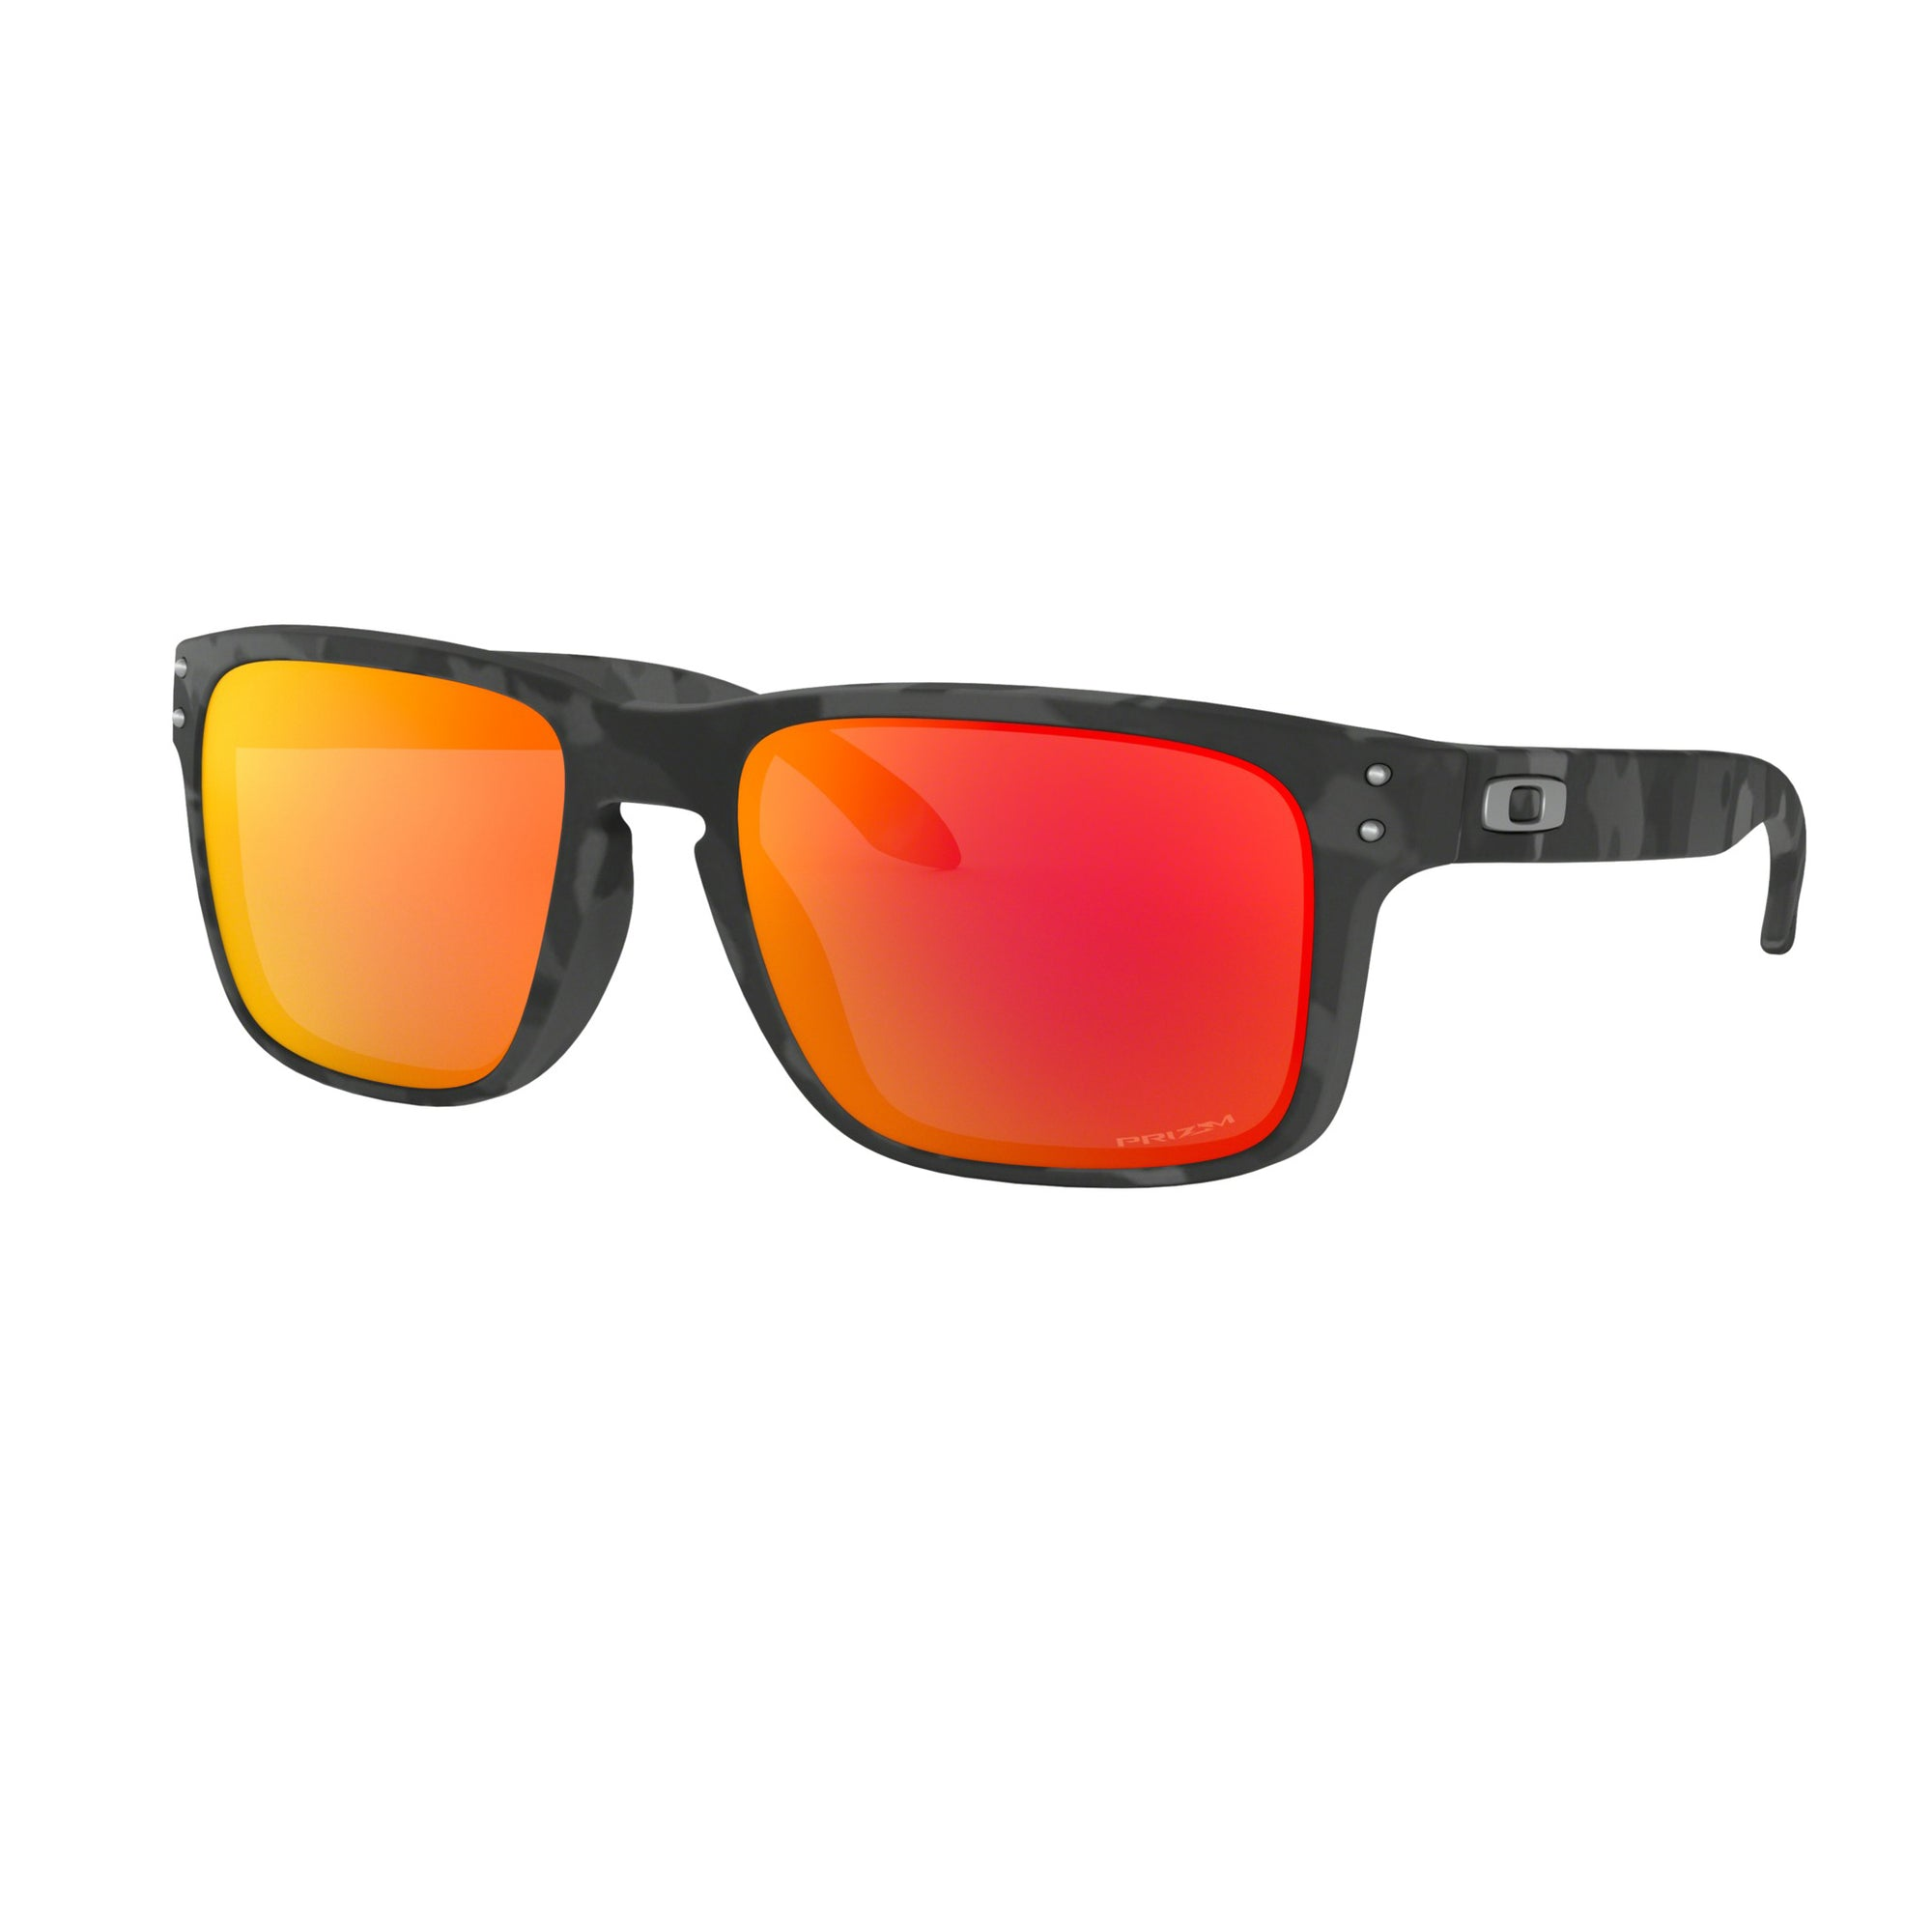 Oakley Holbrook Men's Sunglasses - Black Camo/Prizm Ruby